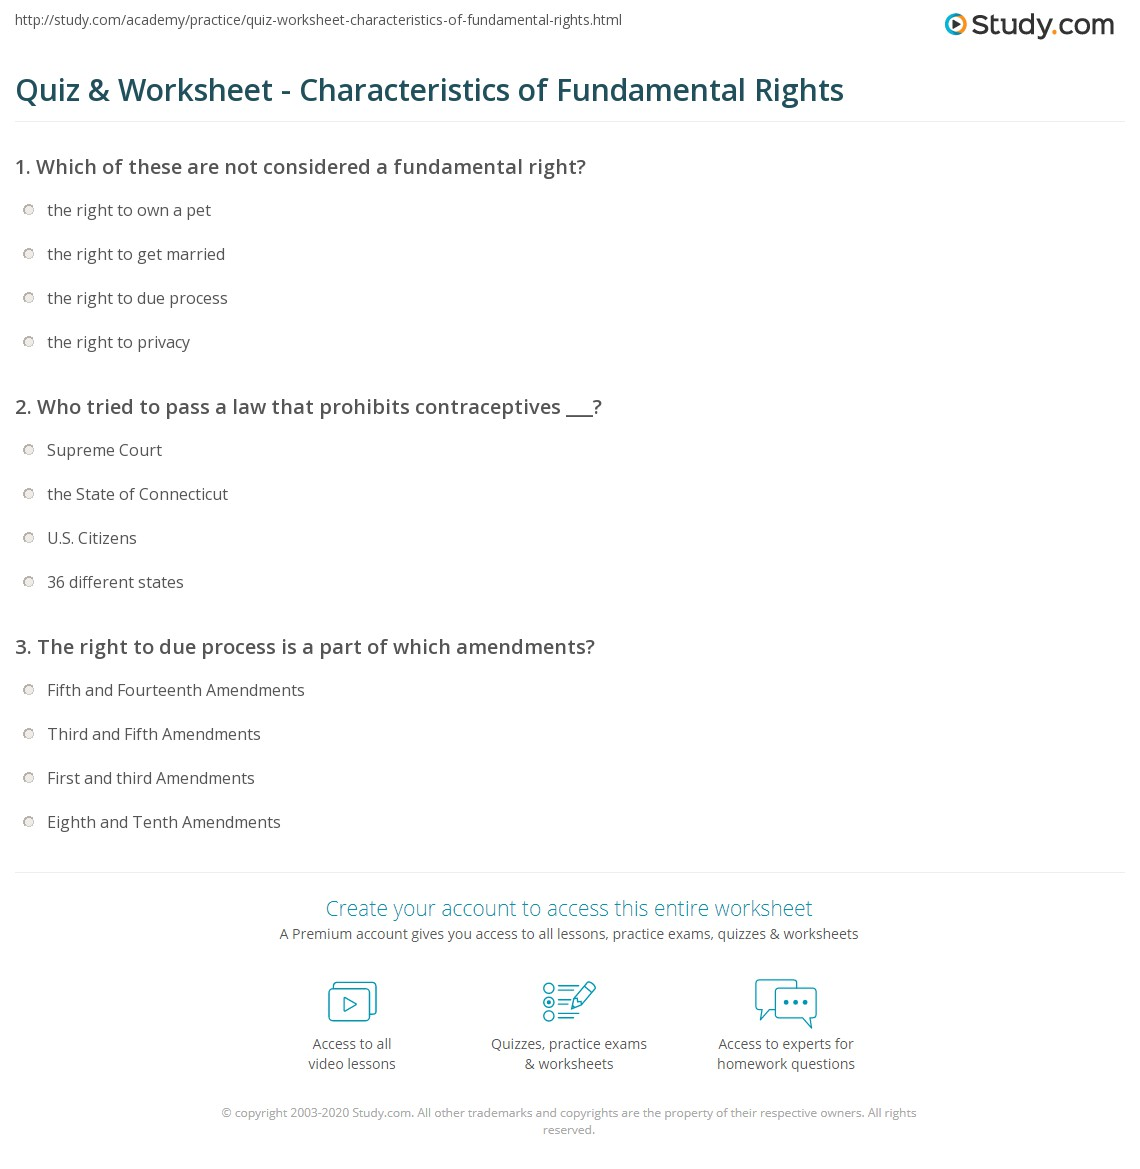 Weirdmailus  Surprising Quiz Amp Worksheet  Characteristics Of Fundamental Rights  Studycom With Lovely Print What Are Fundamental Rights  Definition Types Amp Features Worksheet With Charming First Grade Reading Comprehension Worksheets Also Pythagorean Theorem Worksheet Pdf In Addition Paraphrasing Worksheets And Similar Right Triangles Worksheet As Well As Proofreading Worksheets Additionally Reading Worksheets For Nd Grade From Studycom With Weirdmailus  Lovely Quiz Amp Worksheet  Characteristics Of Fundamental Rights  Studycom With Charming Print What Are Fundamental Rights  Definition Types Amp Features Worksheet And Surprising First Grade Reading Comprehension Worksheets Also Pythagorean Theorem Worksheet Pdf In Addition Paraphrasing Worksheets From Studycom